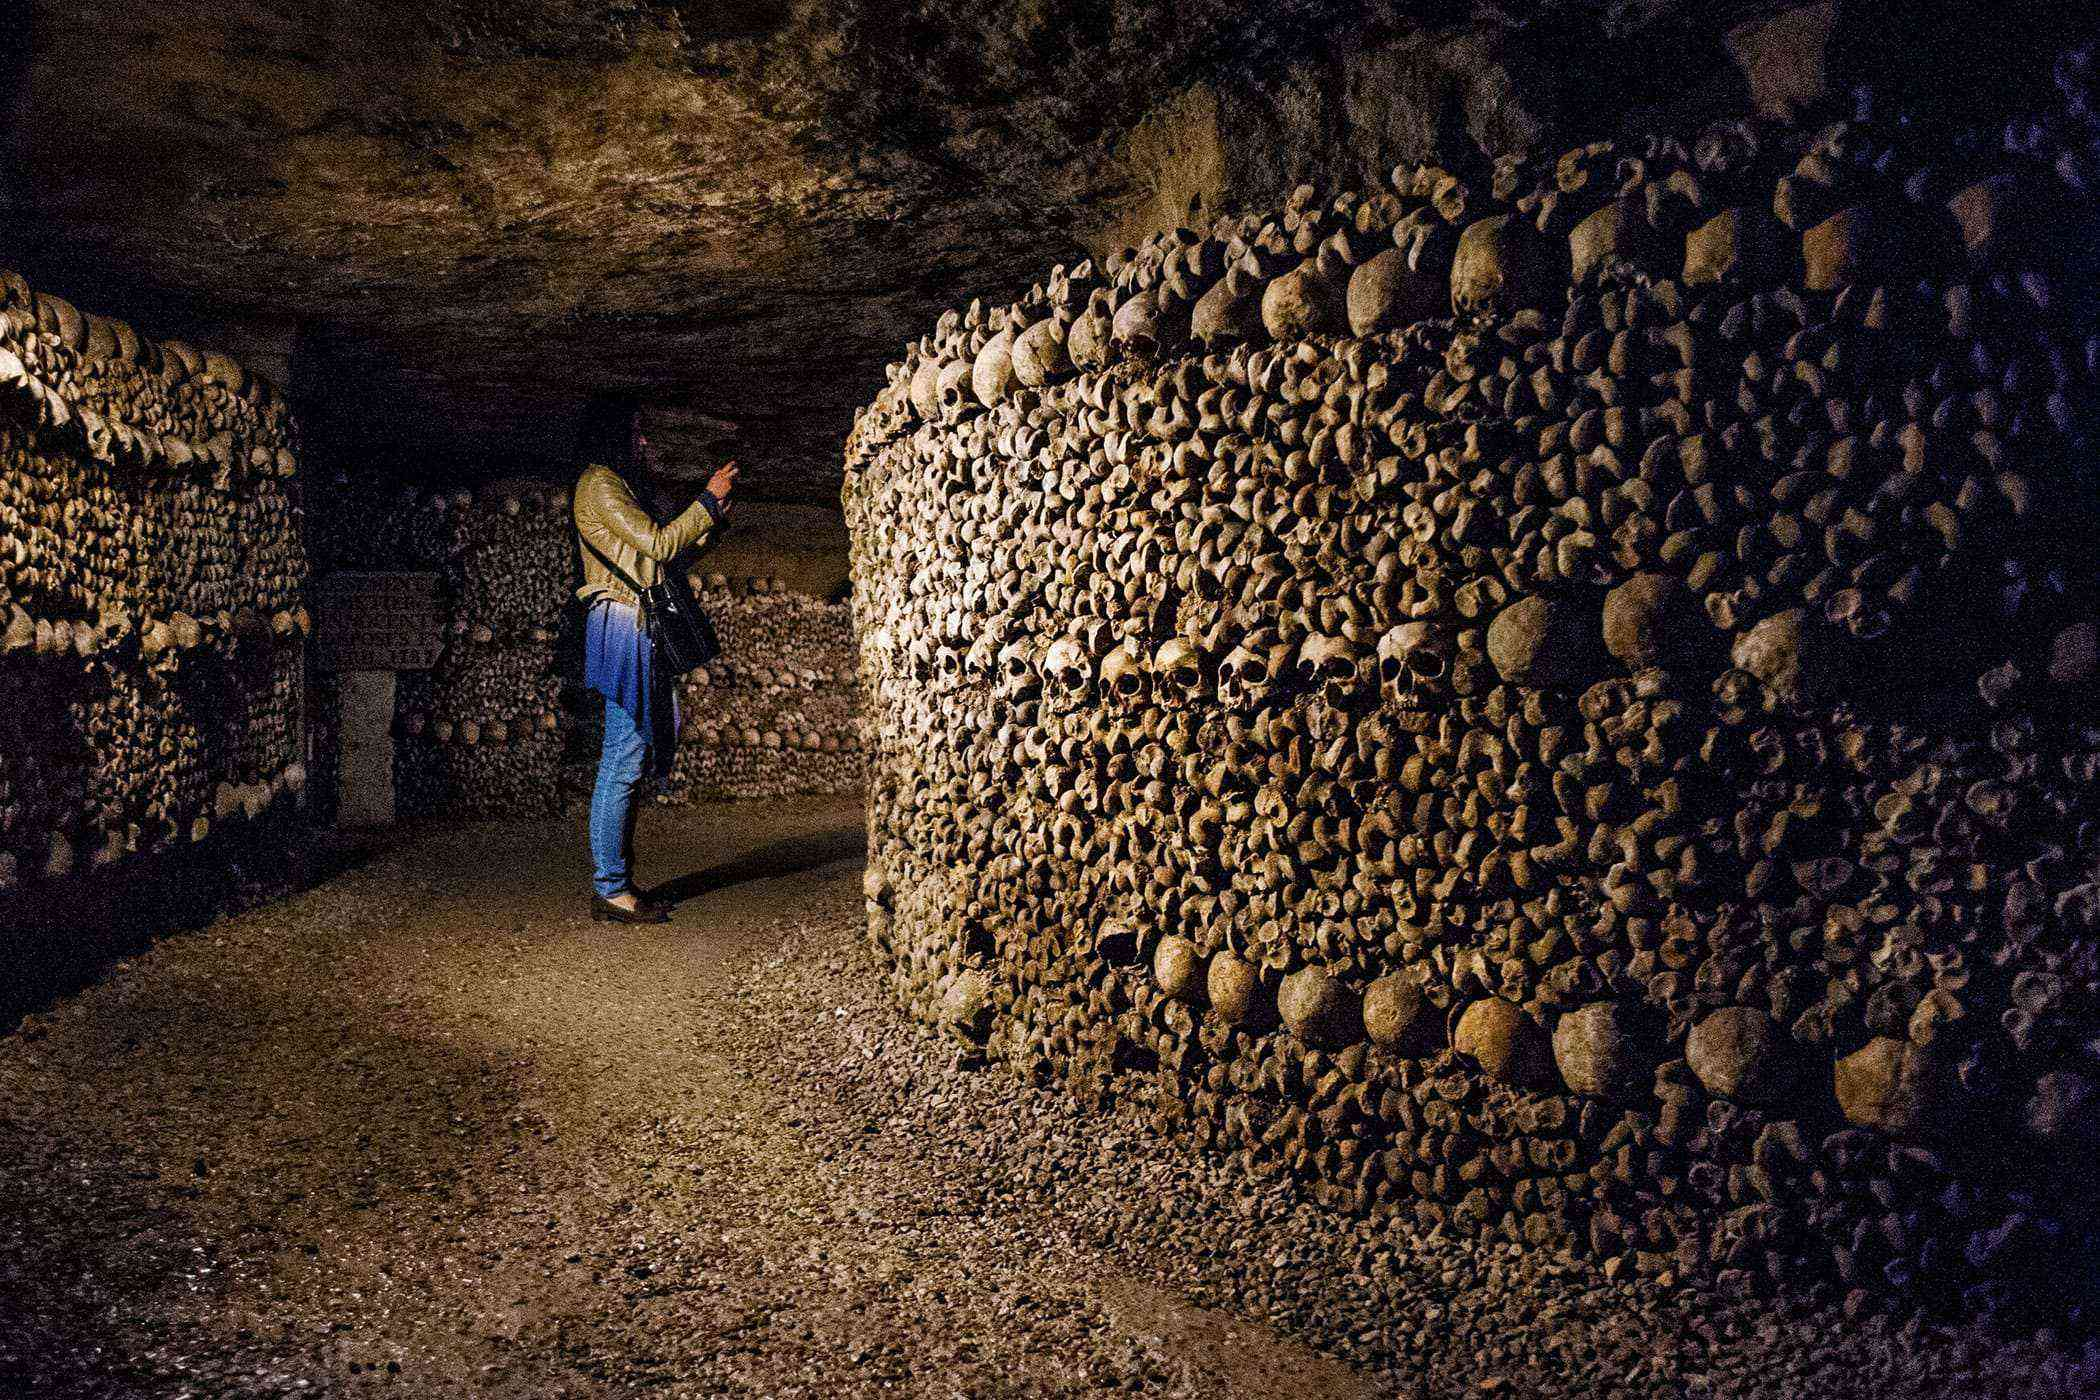 Stuff-Made-Out-Of-Bones-Paris-Catacombs-2